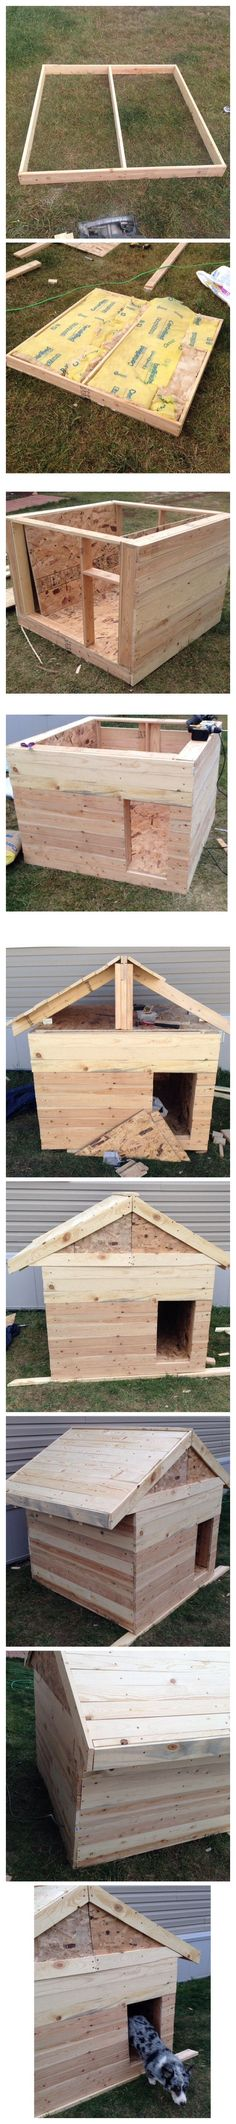 Building a heated and insulated dog house with minimal tools- a ruler, marker, circular saw, drill and hammer